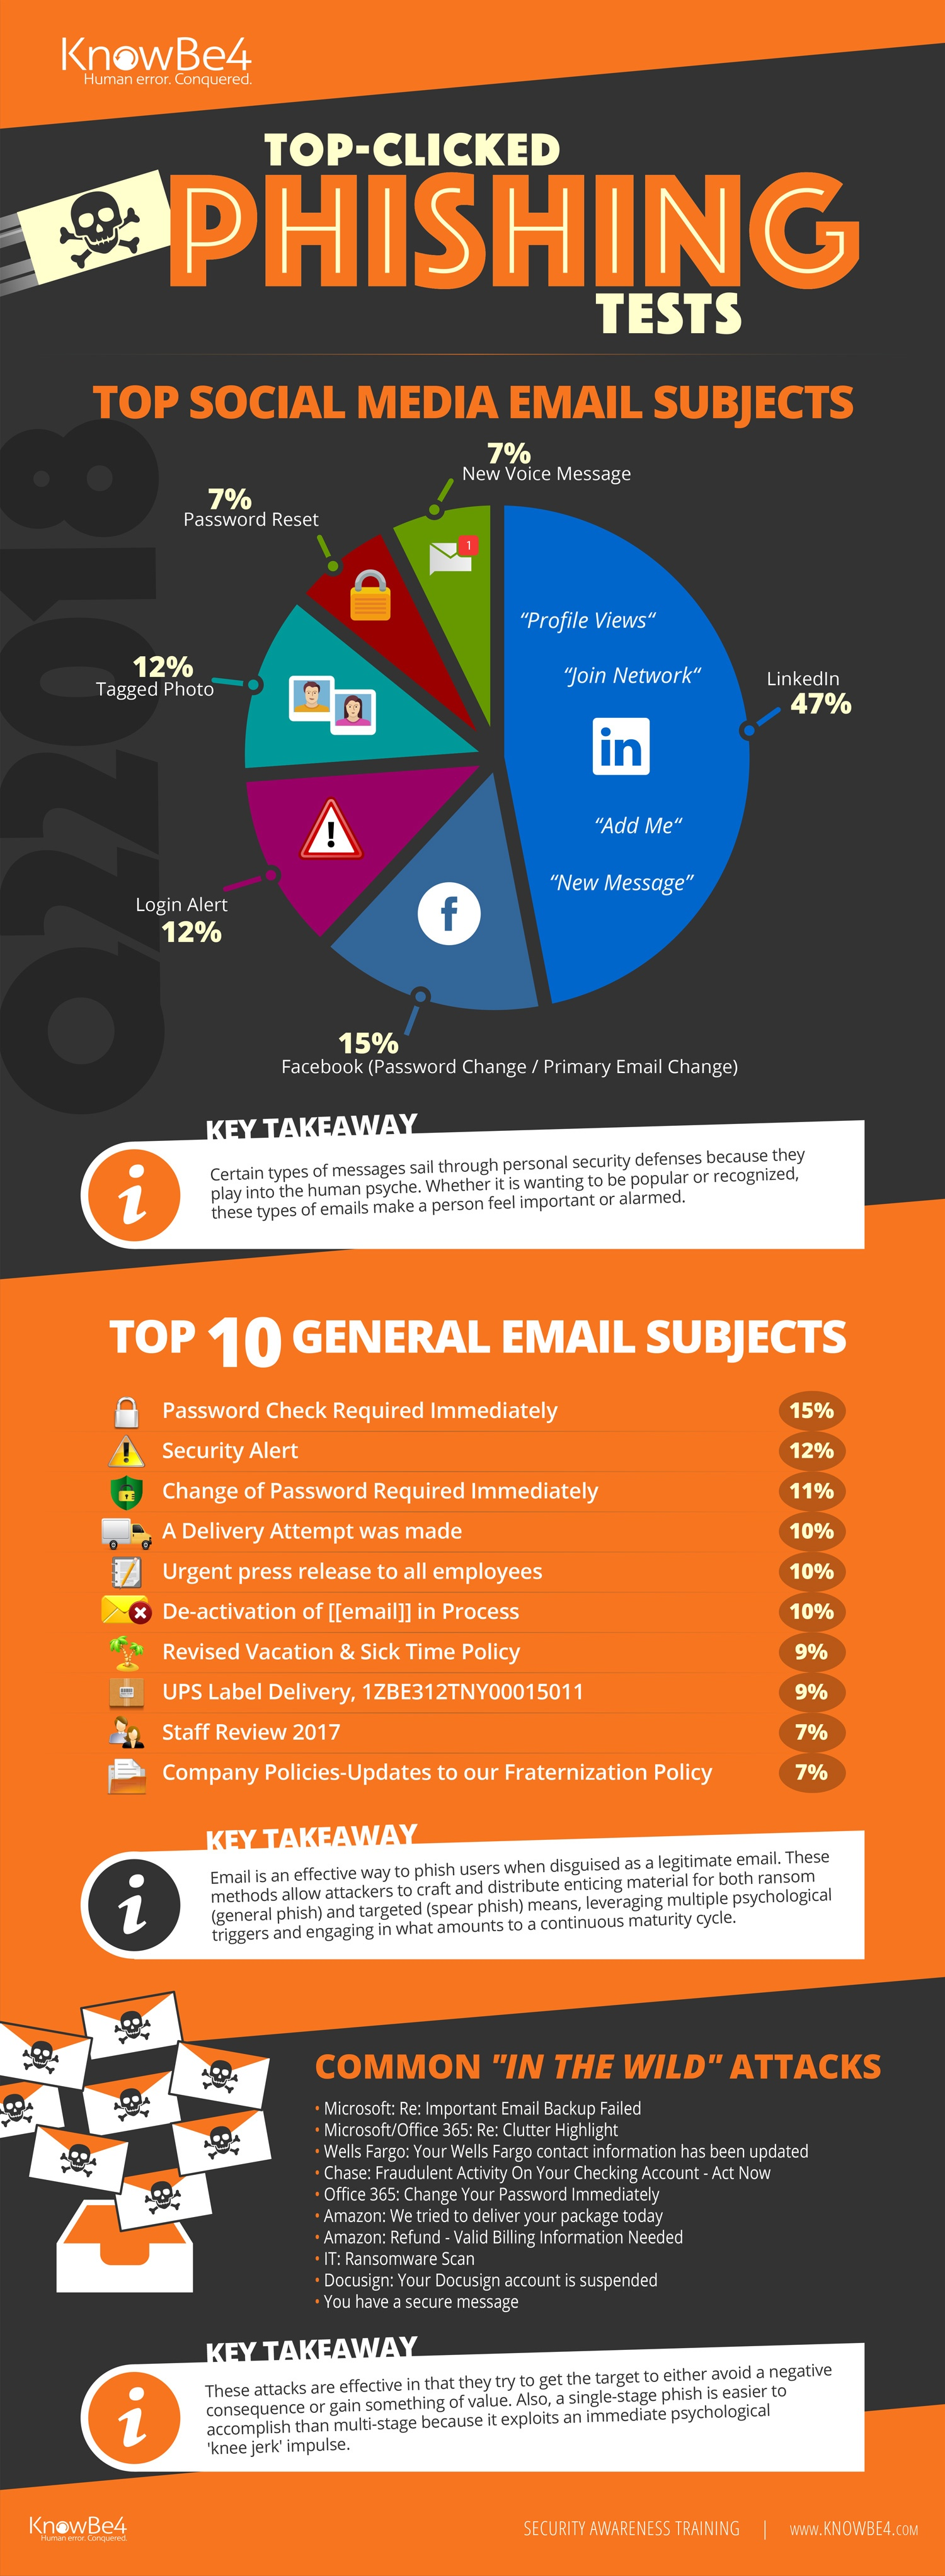 KnowBe4_Phishing_InfoGraphic_Q22018  - KnowBe4 Phishing InfoGraphic Q22018 - Second Quarter 2018 Top-Clicked Phishing Email Subjects [INFOGRAPHIC]